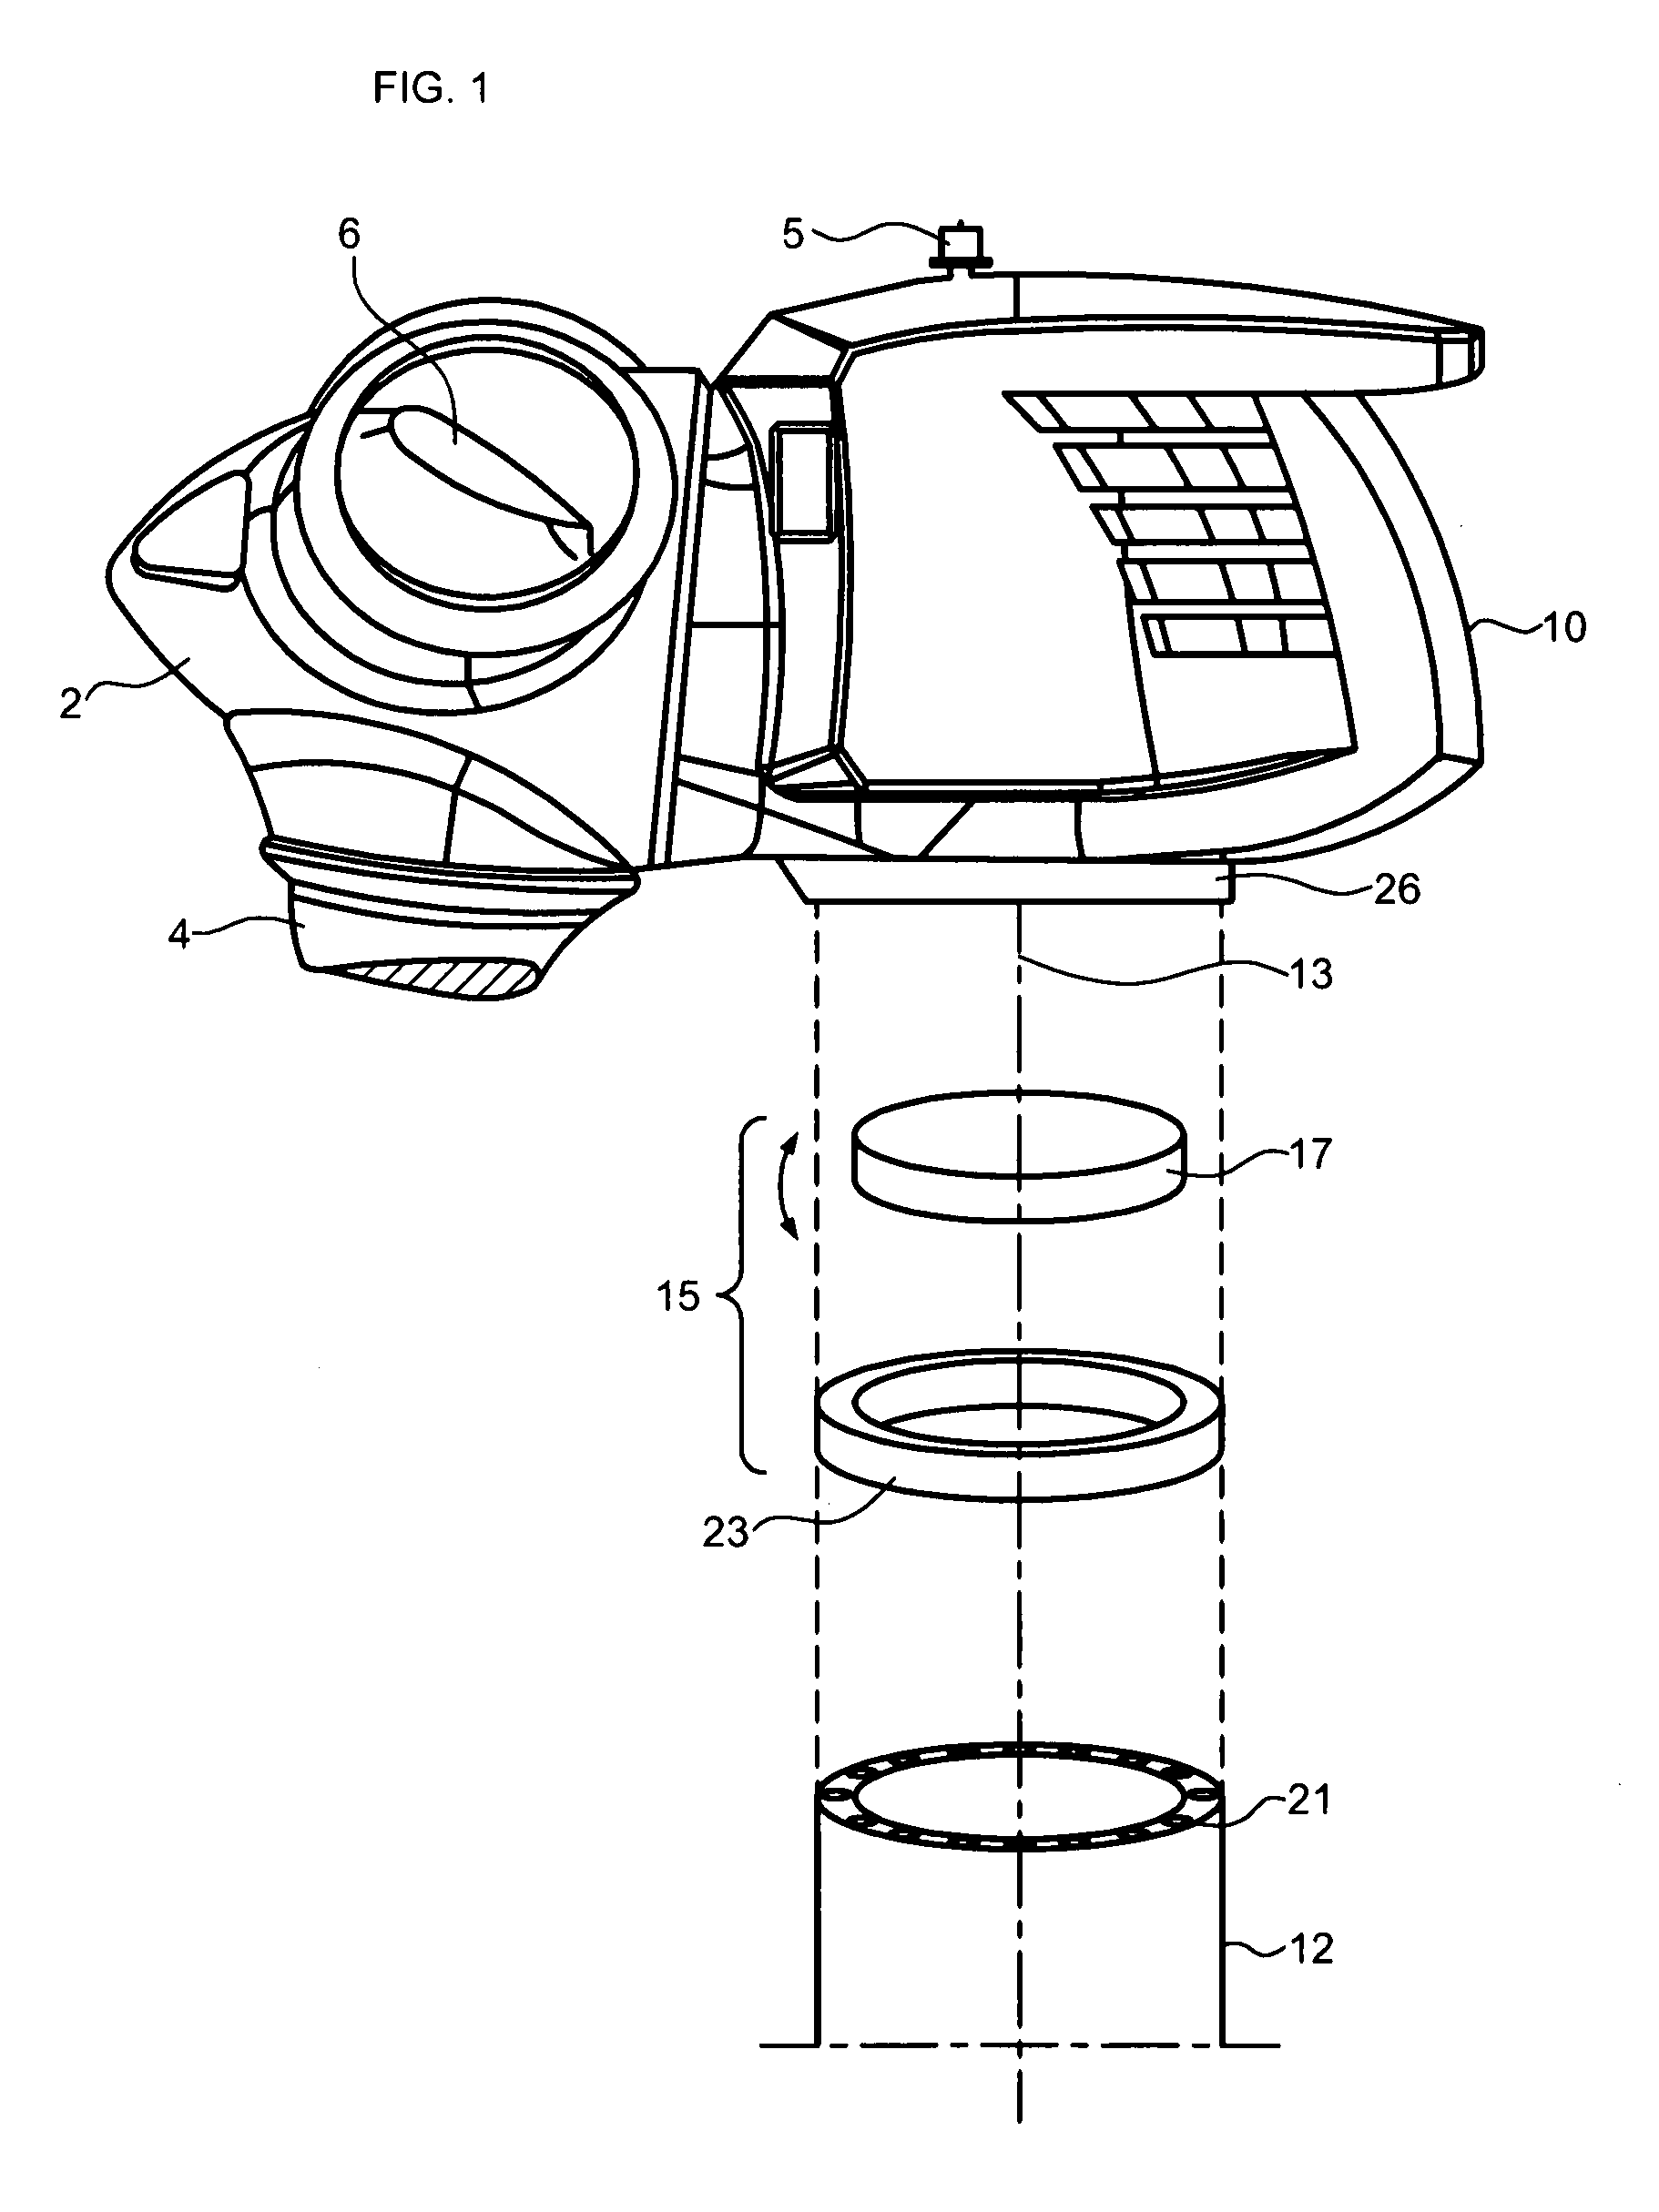 Wo A1 Motor Yaw Drive System For A Wind Turbine